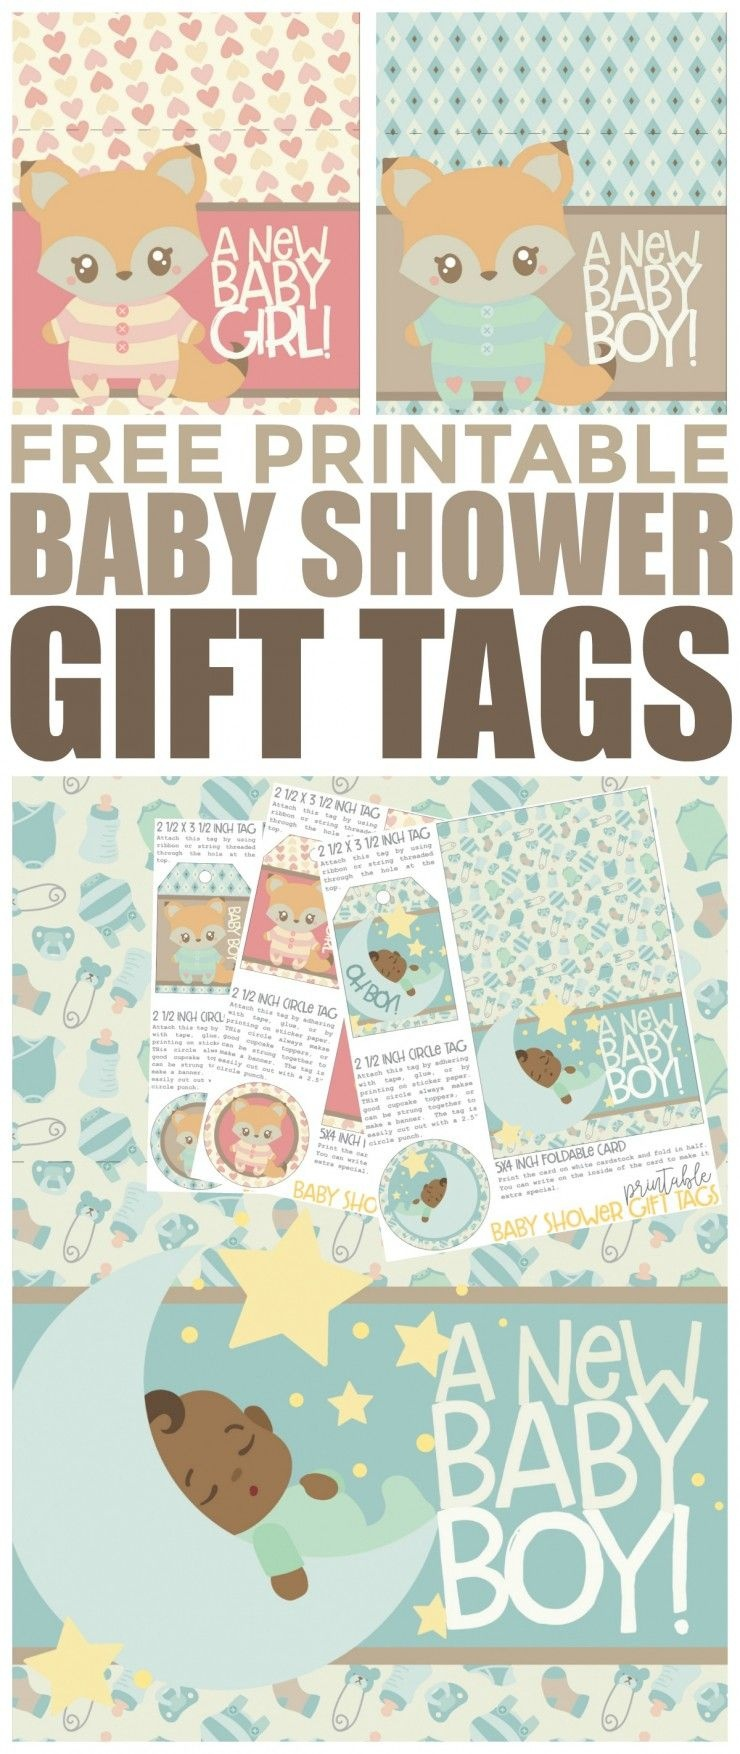 Free Printable Baby Shower Gift Tags | Free Printables | Baby Shower - Free Printable Baby Shower Gift Tags